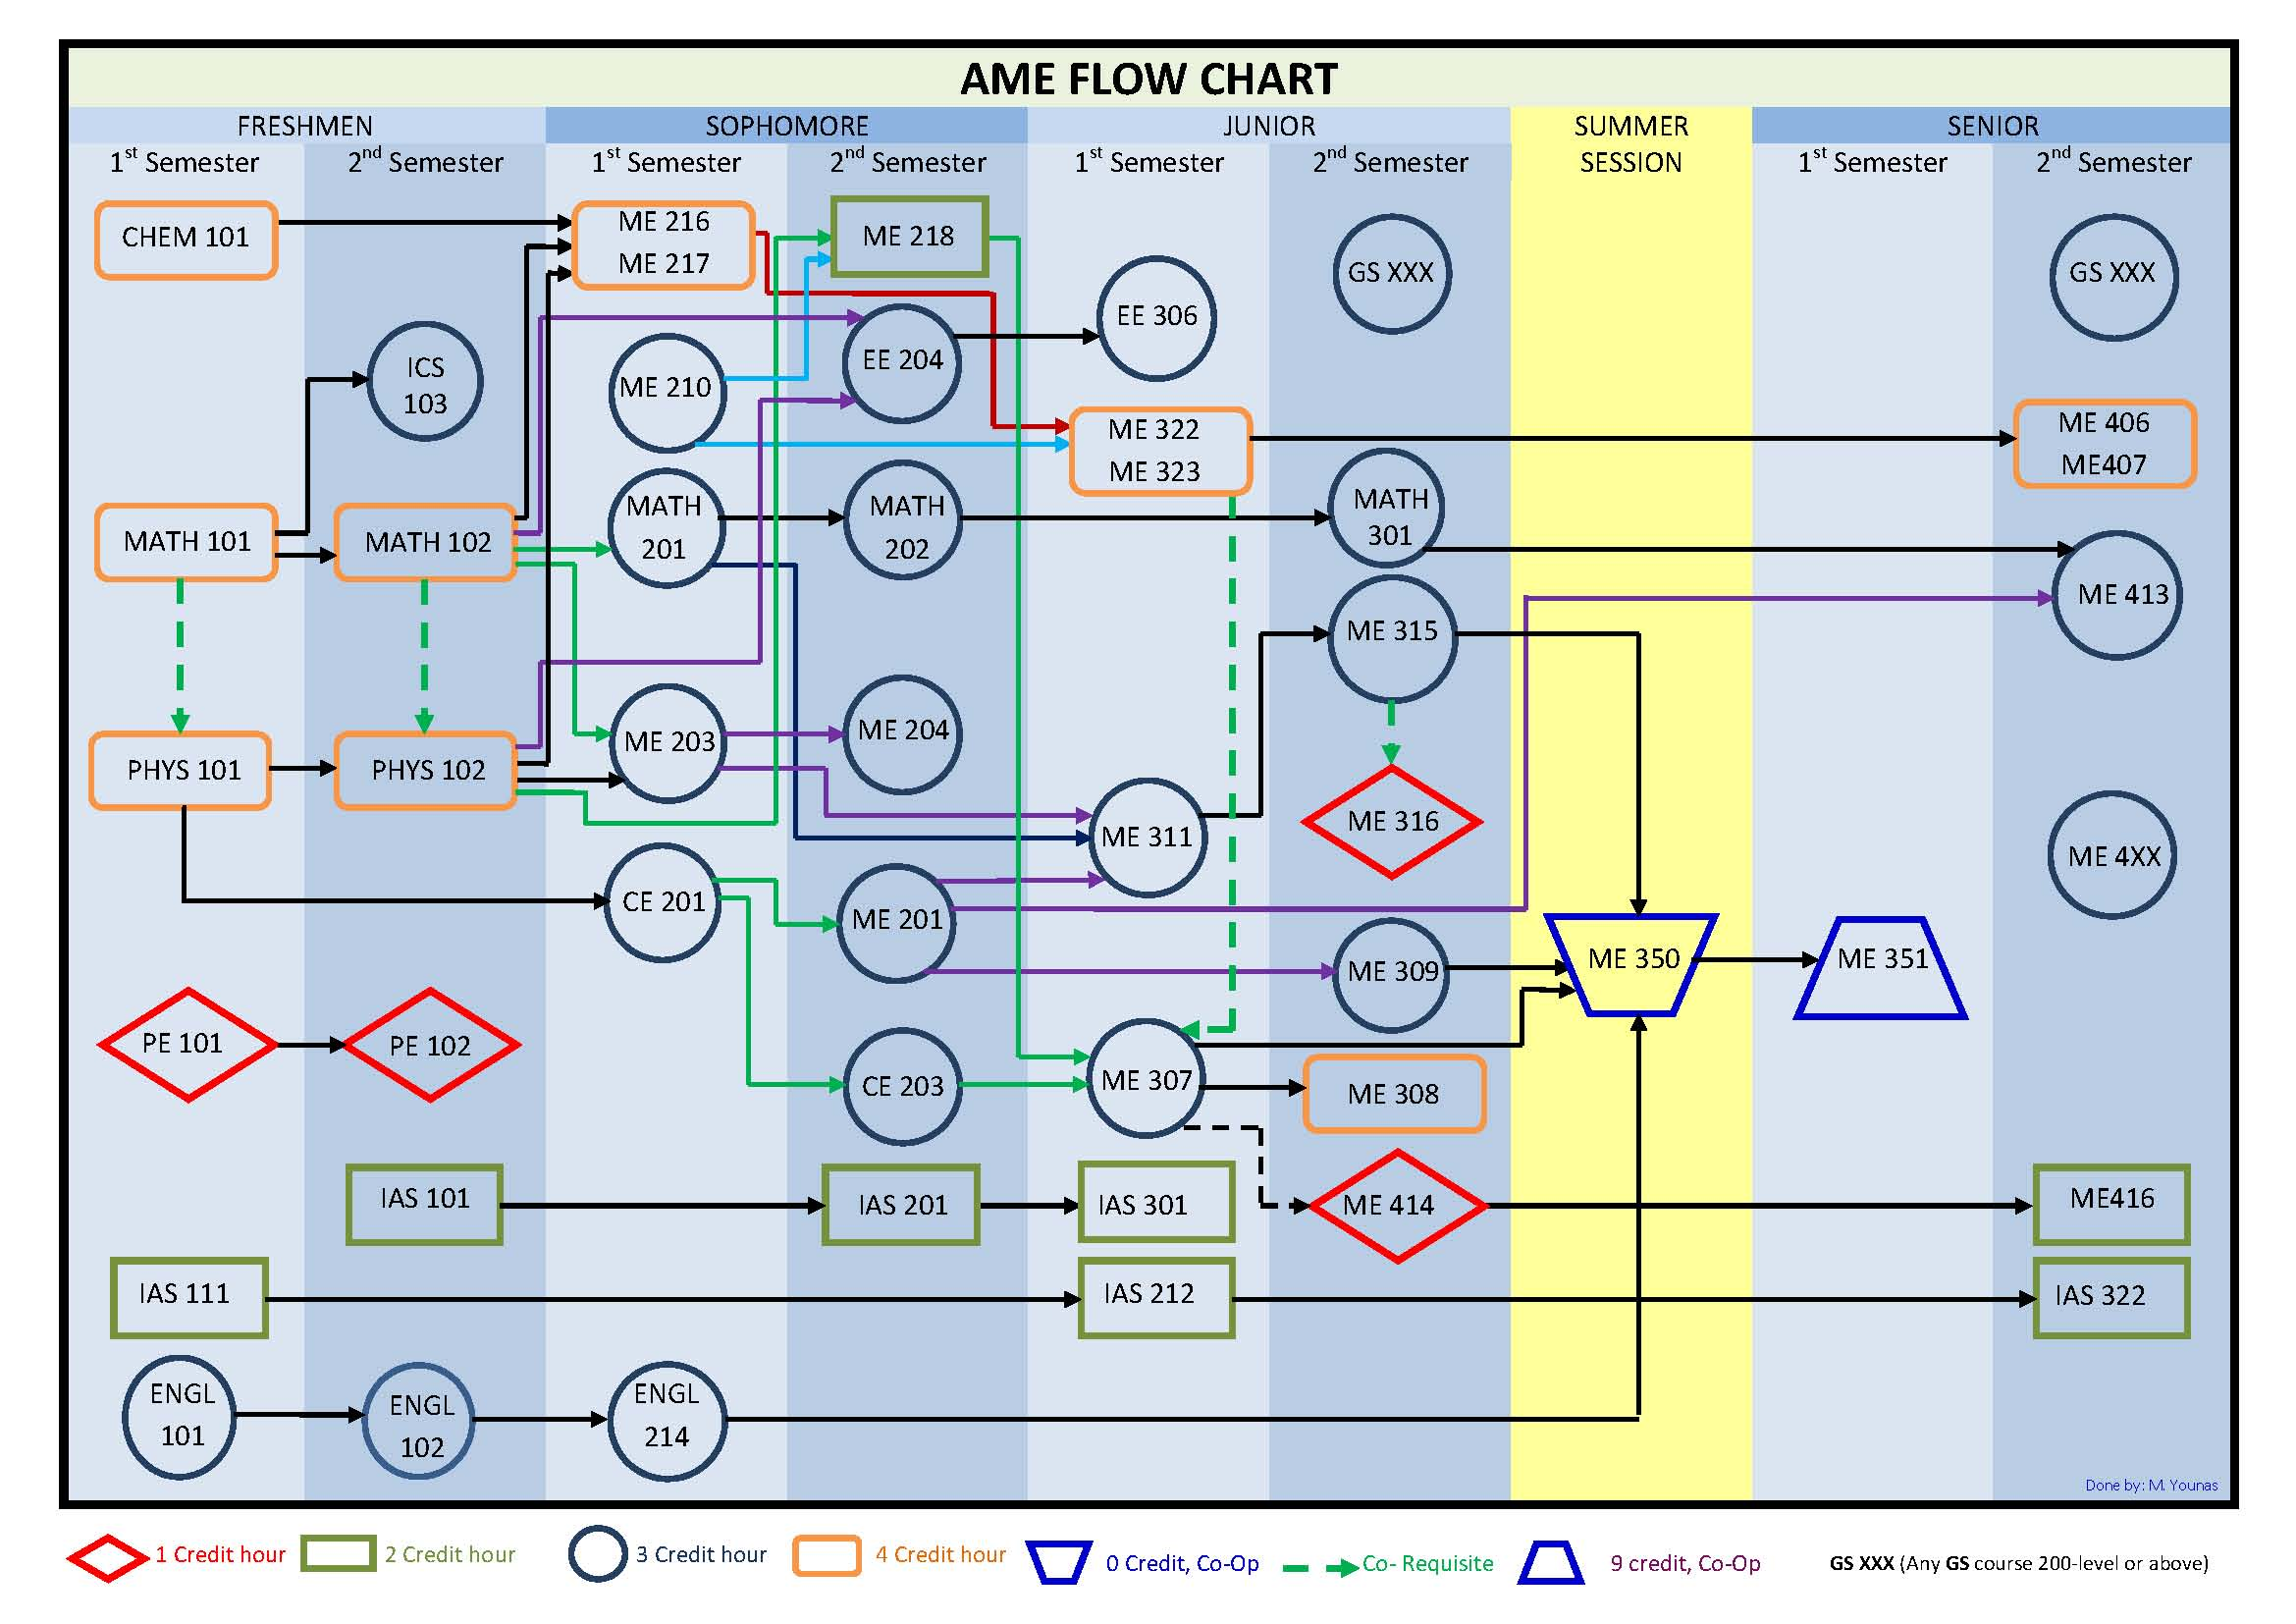 AME FLOW CHART (Revised November 2014).jpg